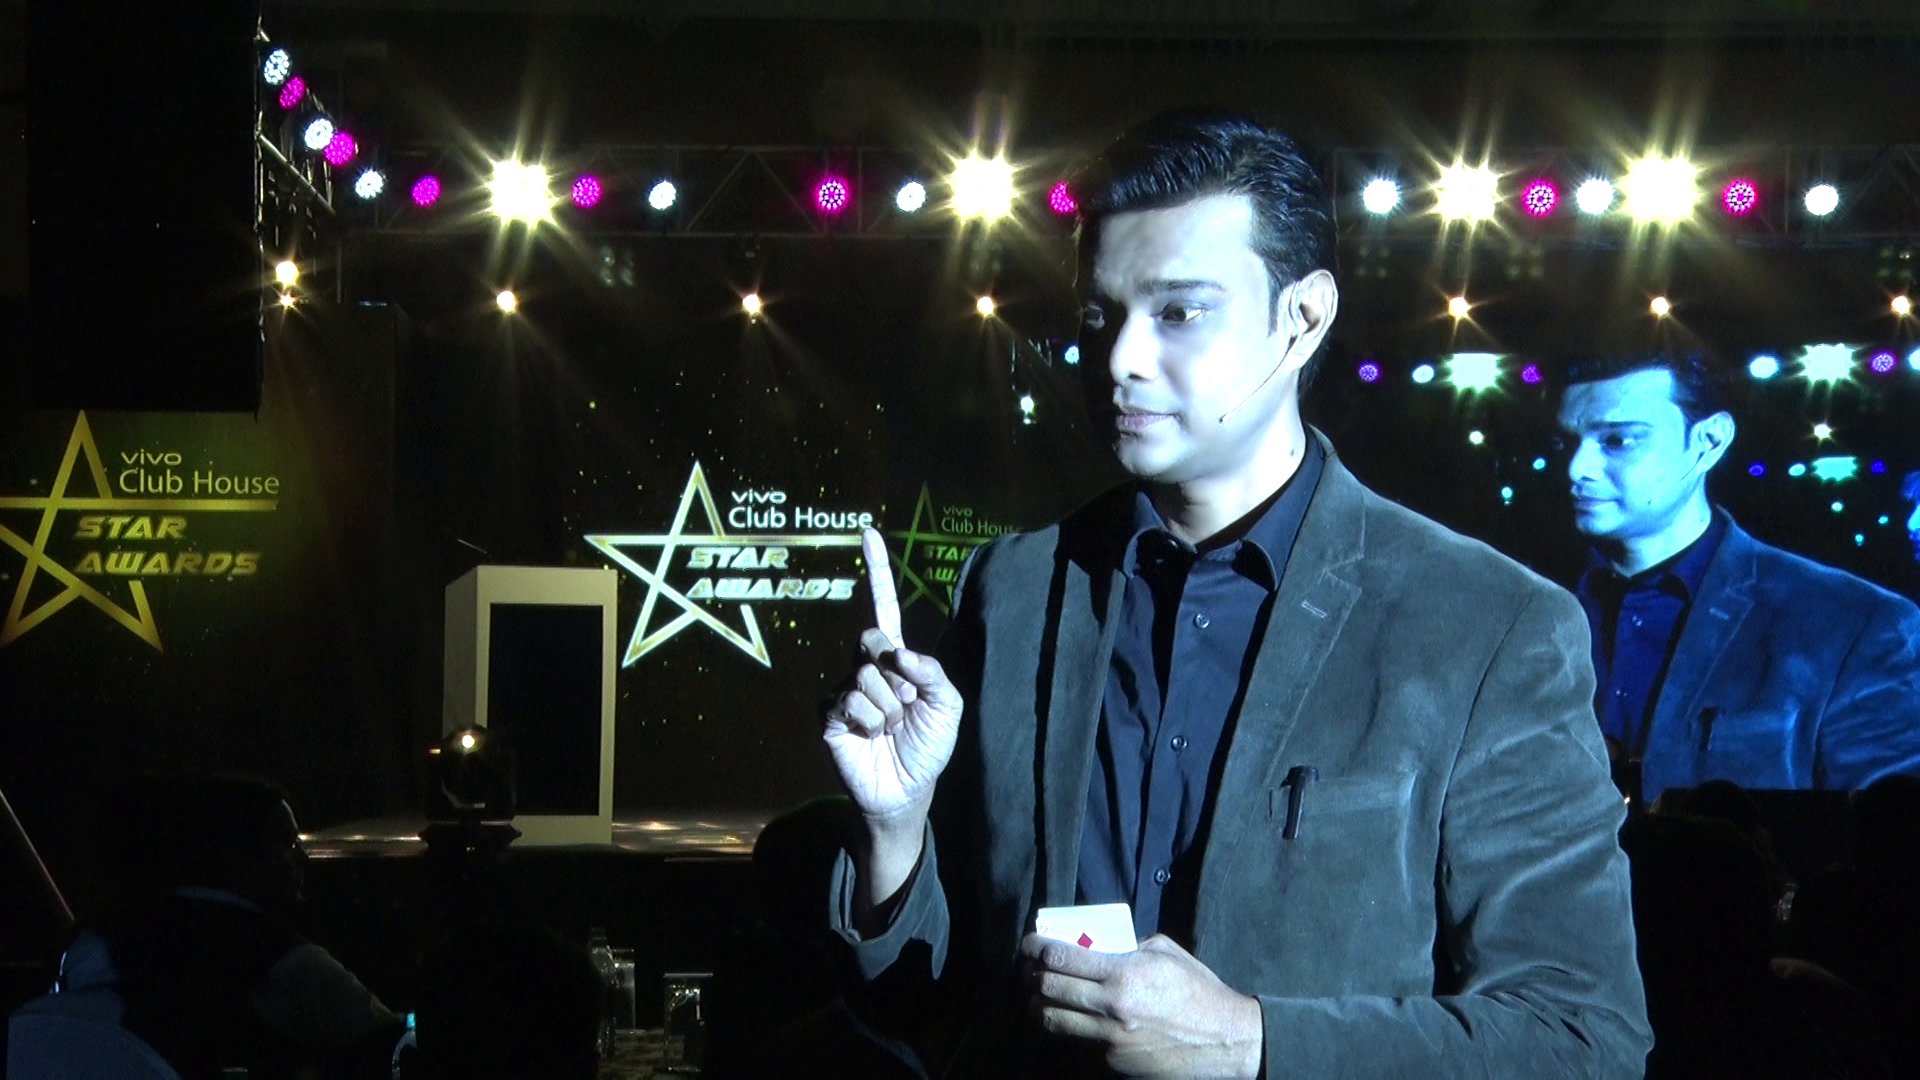 Corporate event entertainer in India Sourav Burman performing for the Vivo Star Awards in Kolkata